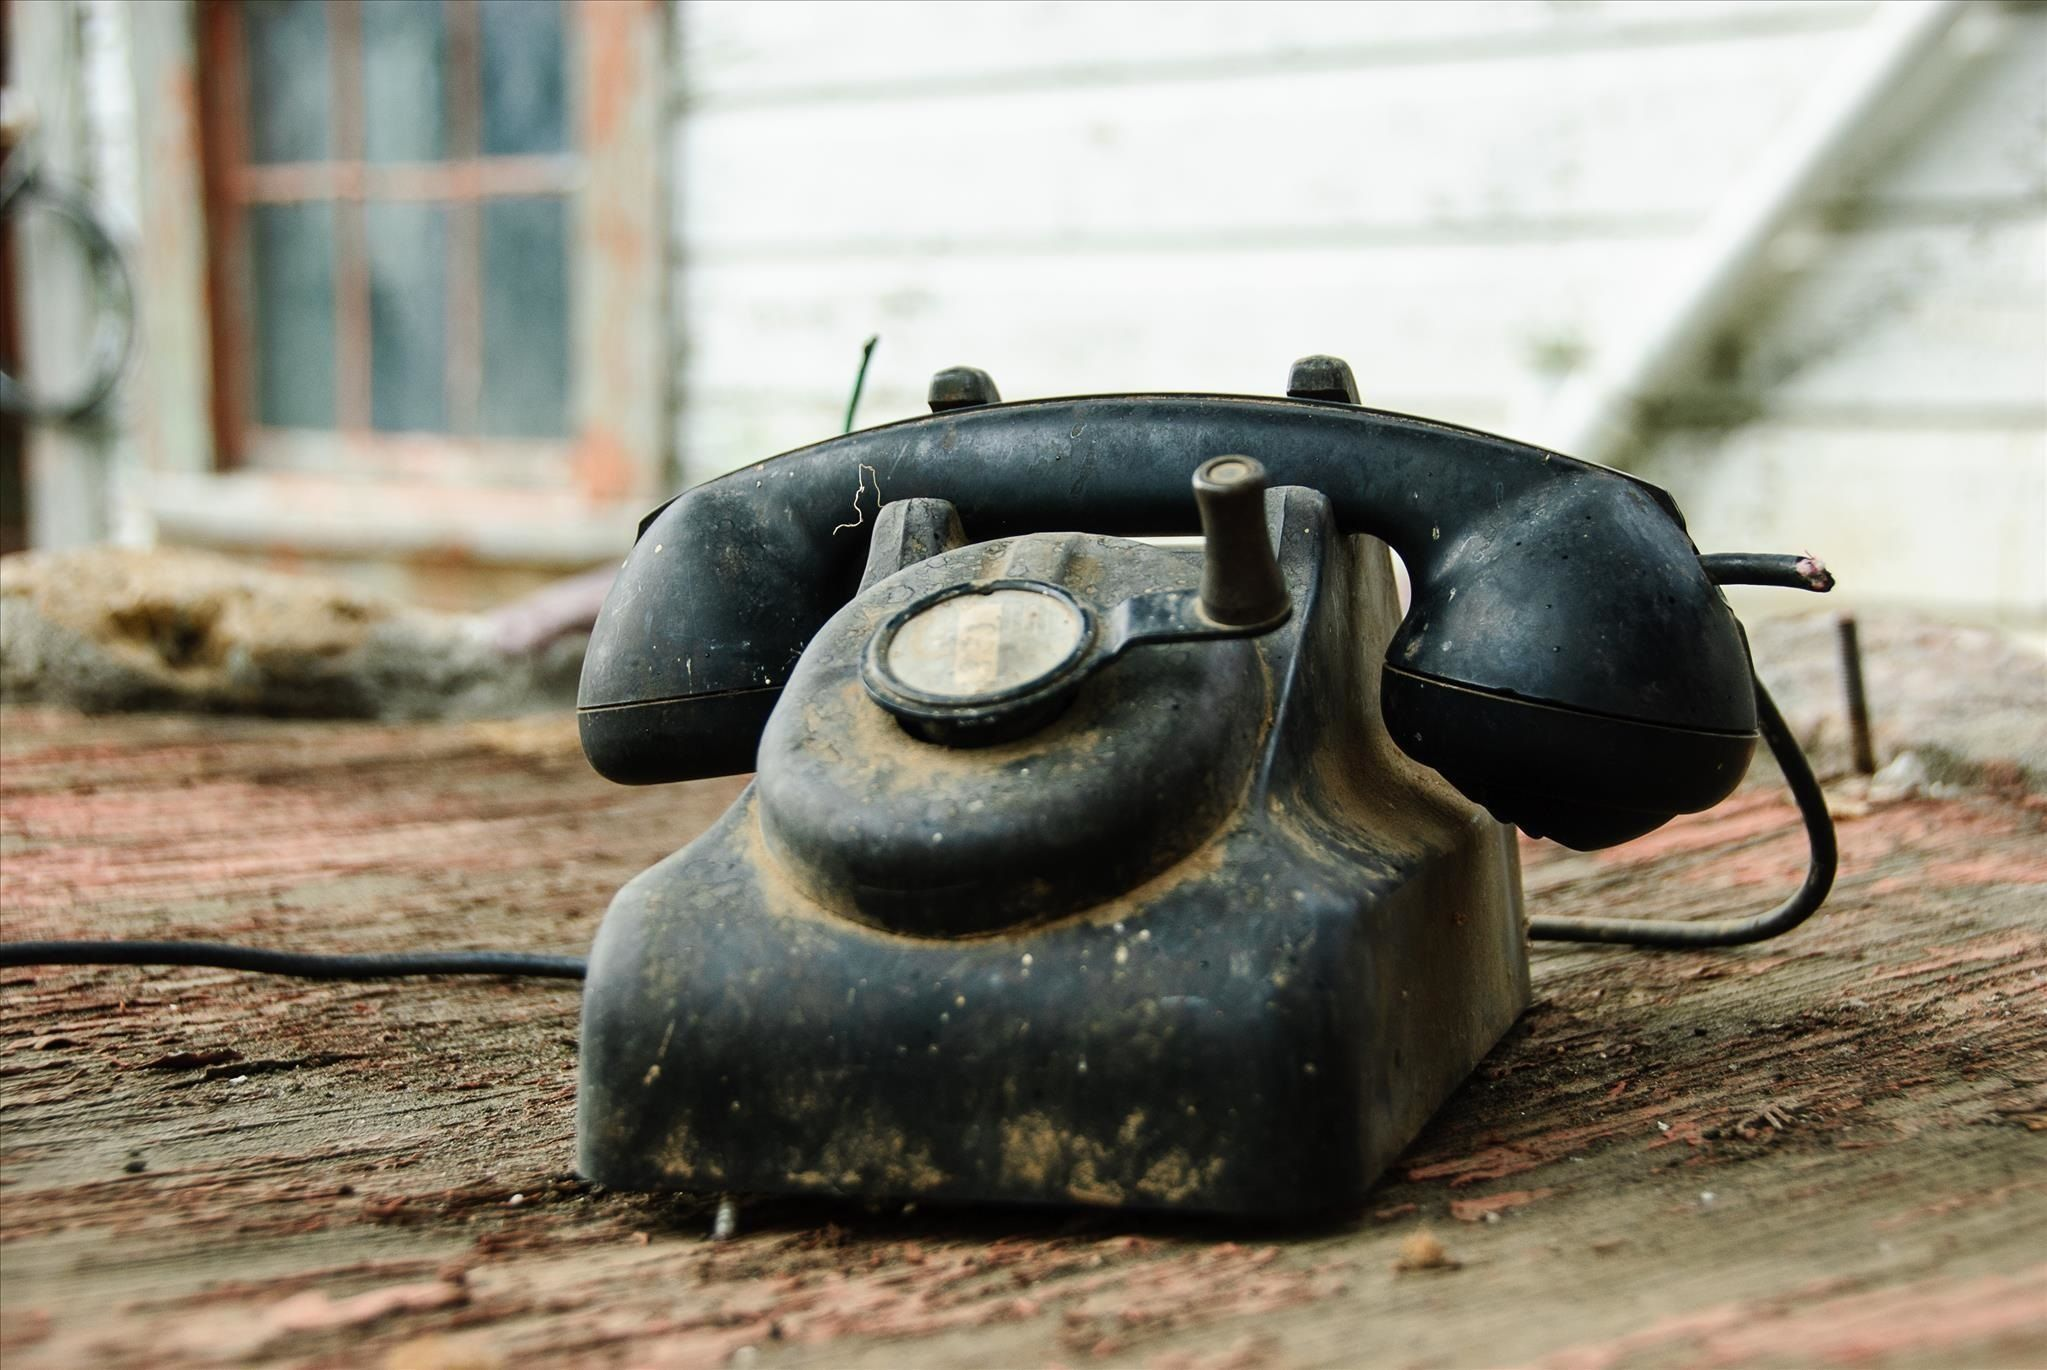 How To Hack Your Old Phone Line Into An Emergency Power Supply For